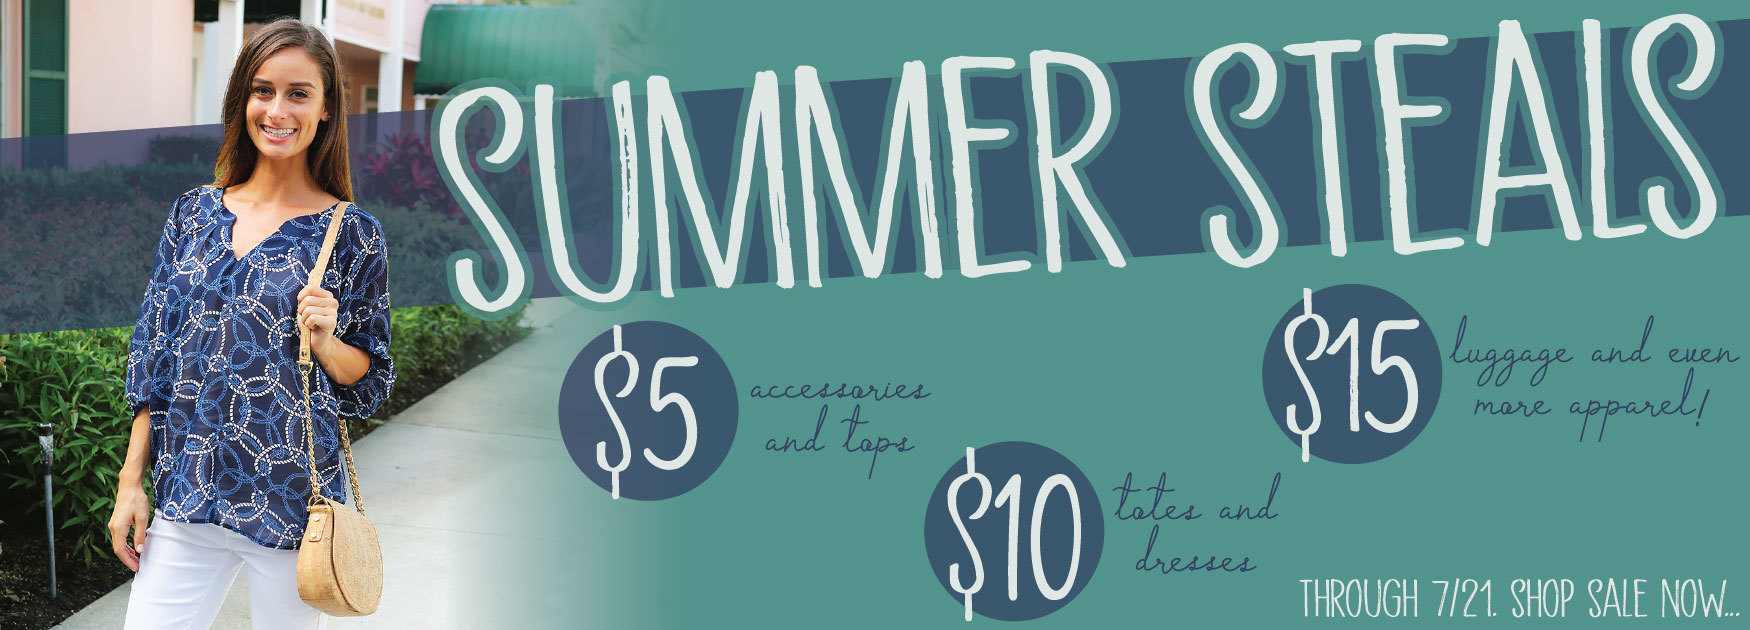 summer steals, over 100 items marked $5, $10, or $15!